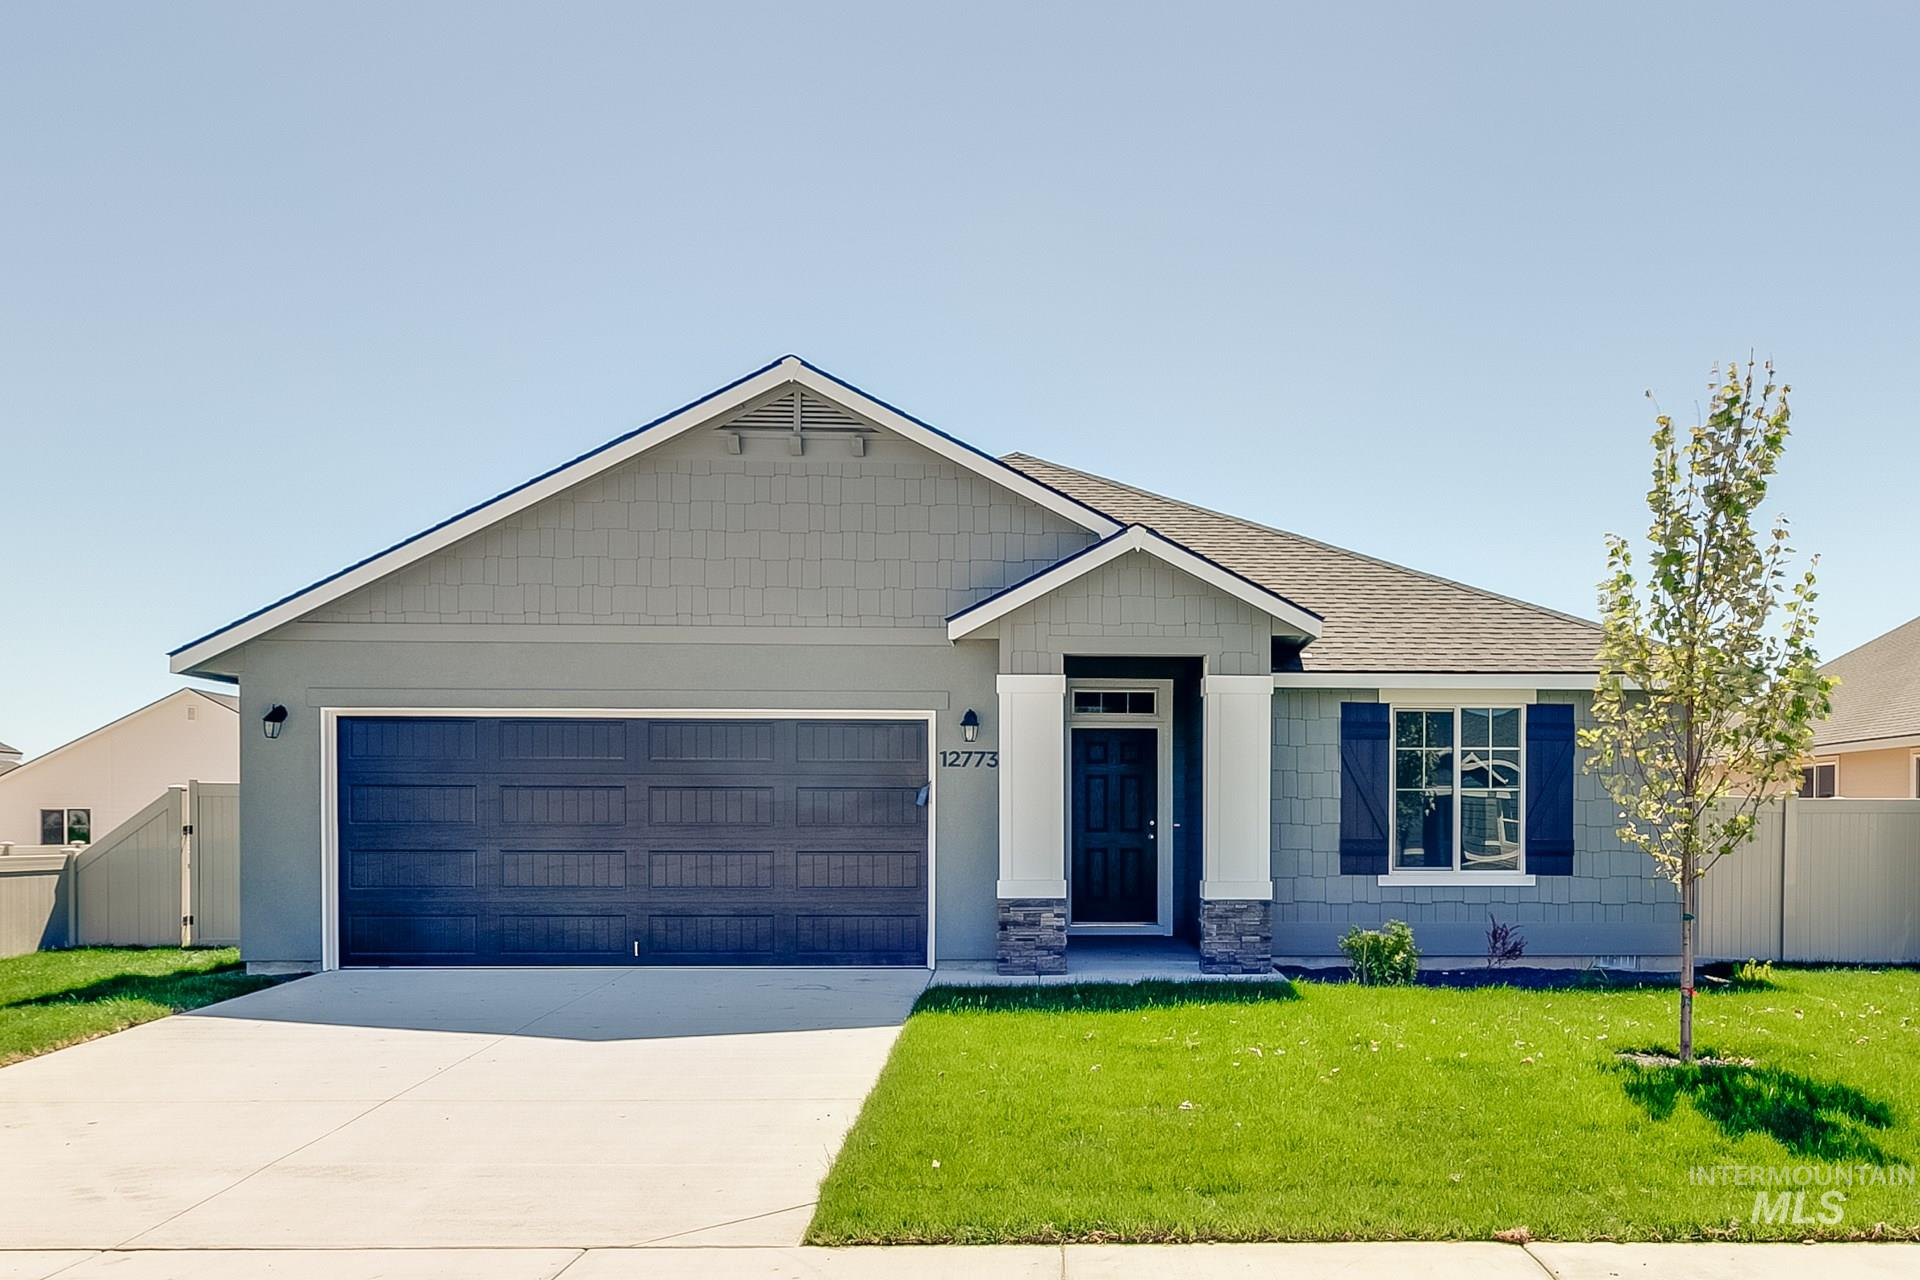 12625 Ironstone Dr Property Photo - Nampa, ID real estate listing